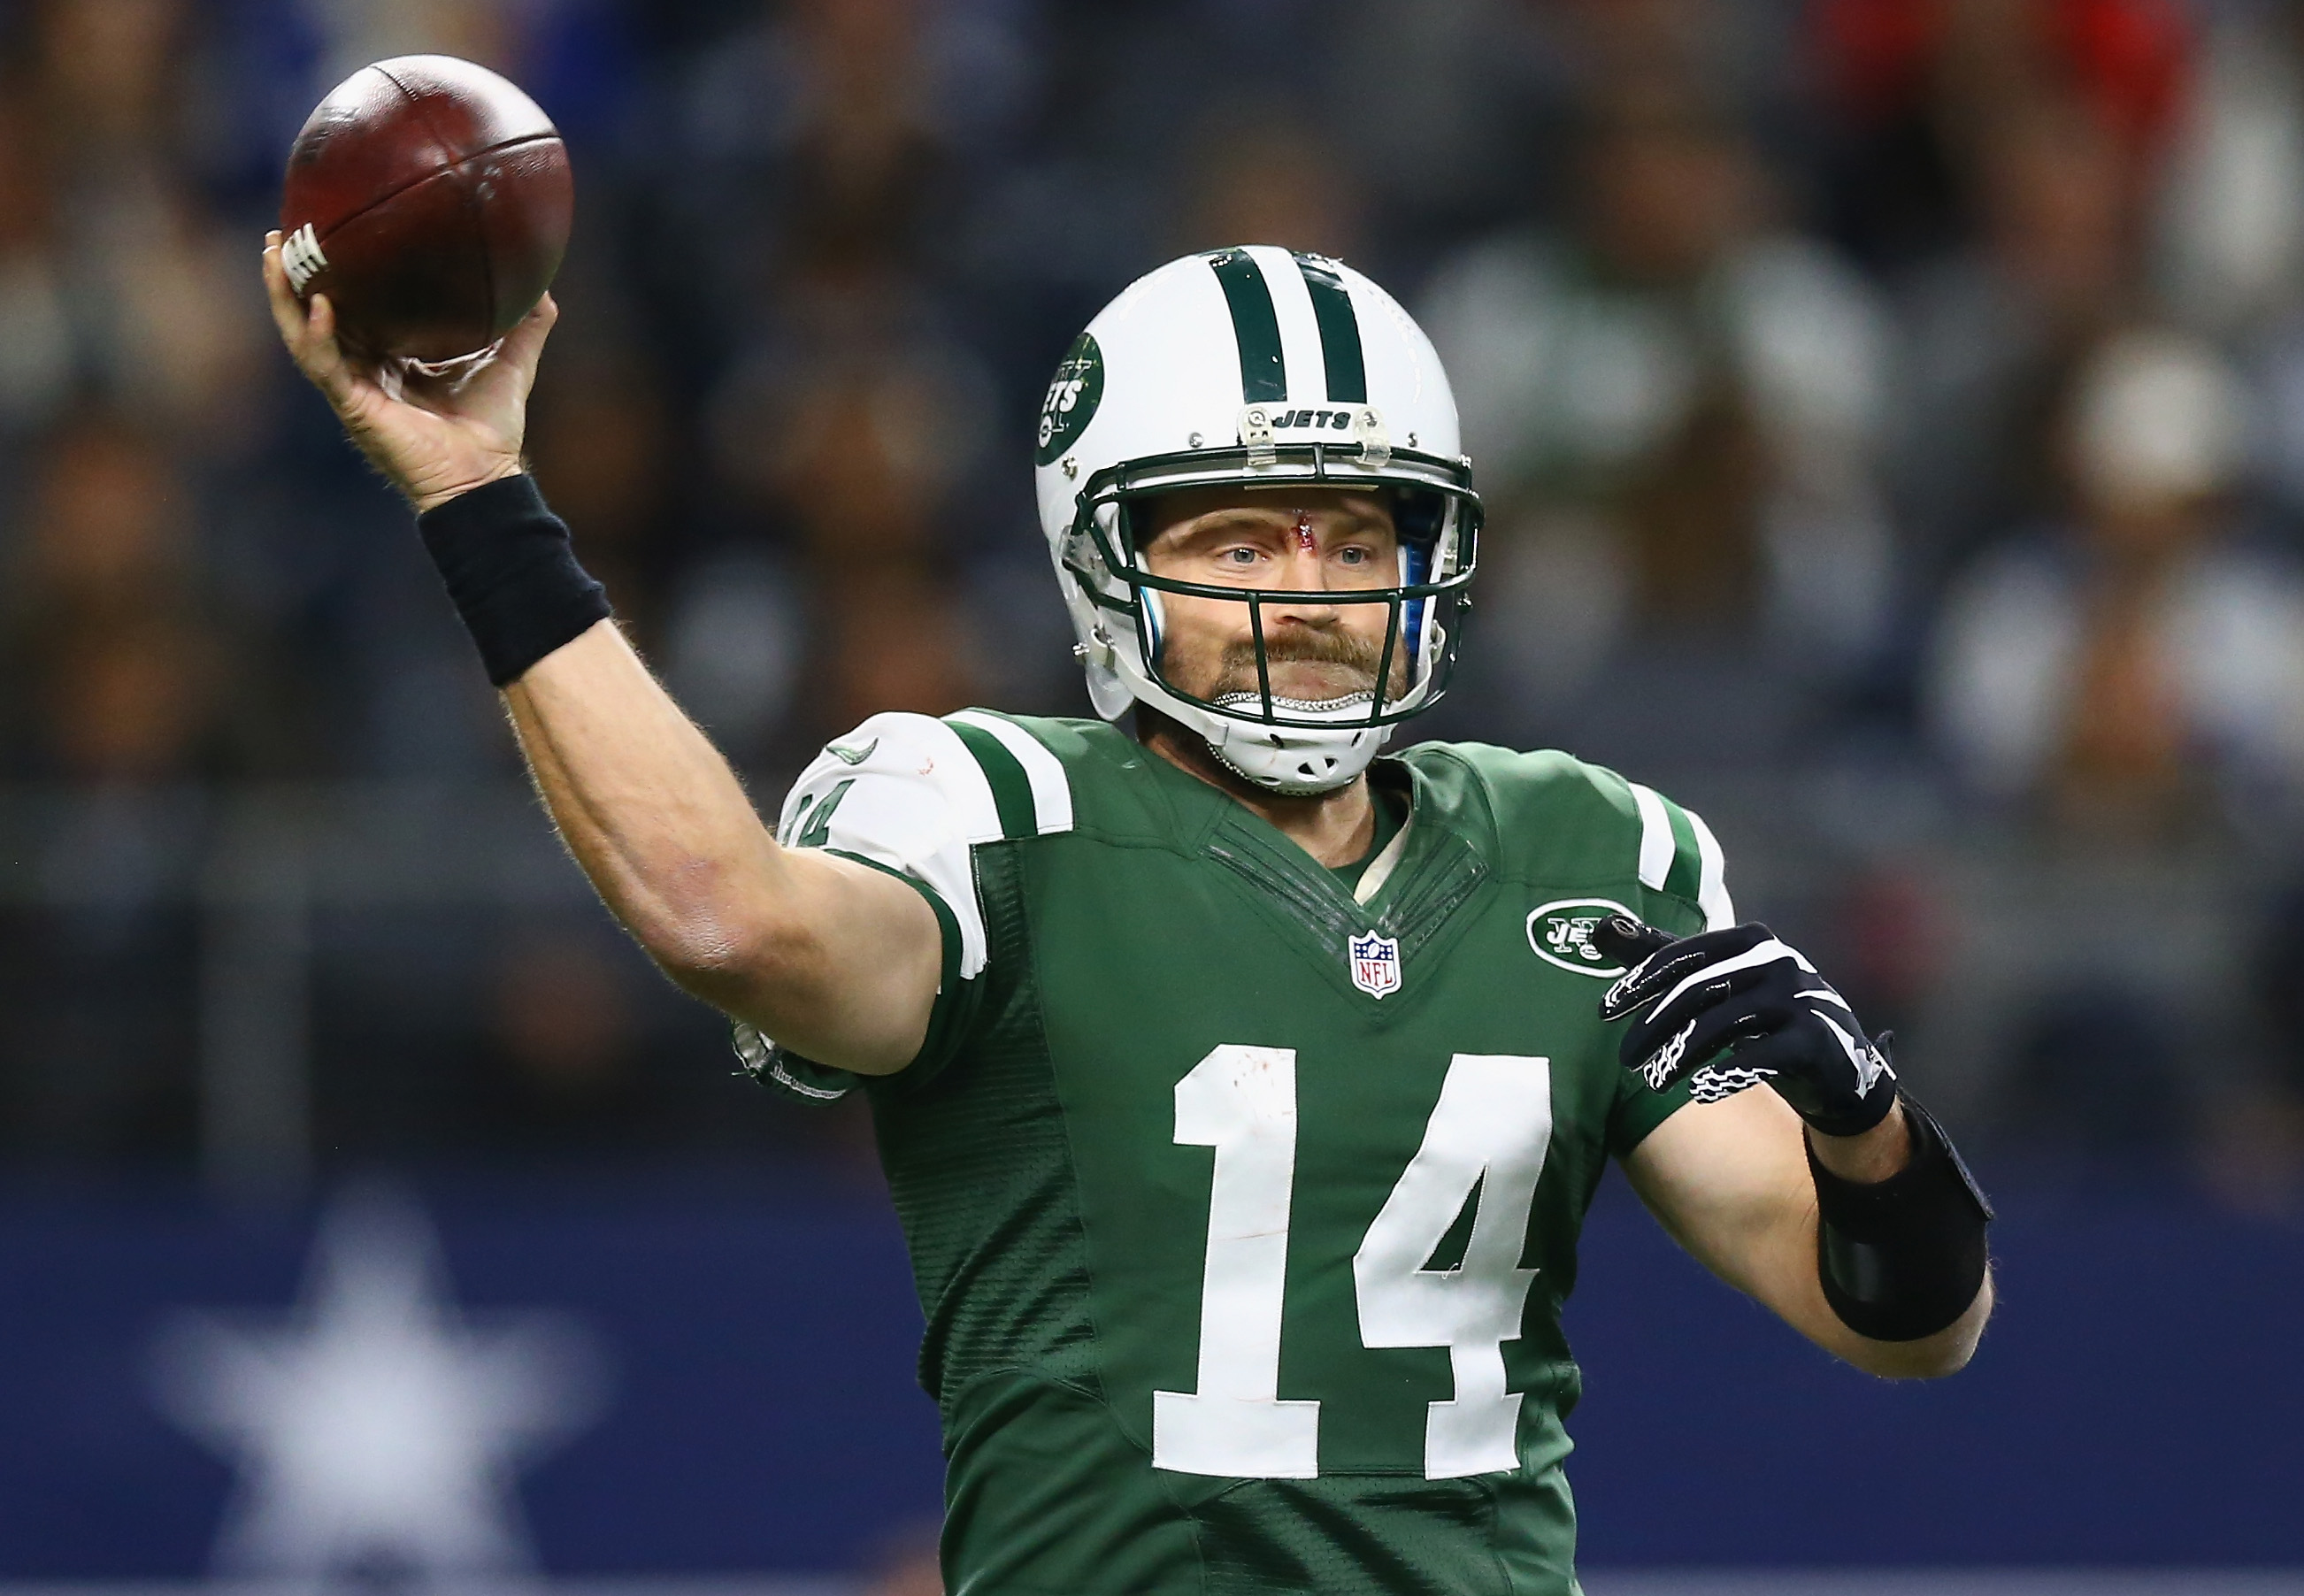 Ryan Fitzpatrick of the New York Jets looks for an open receiver against the Dallas Cowboys at AT&T Stadium in Arlington, Texas, on Dec. 19, 2015. (Photo by Tom Pennington/Getty Images)